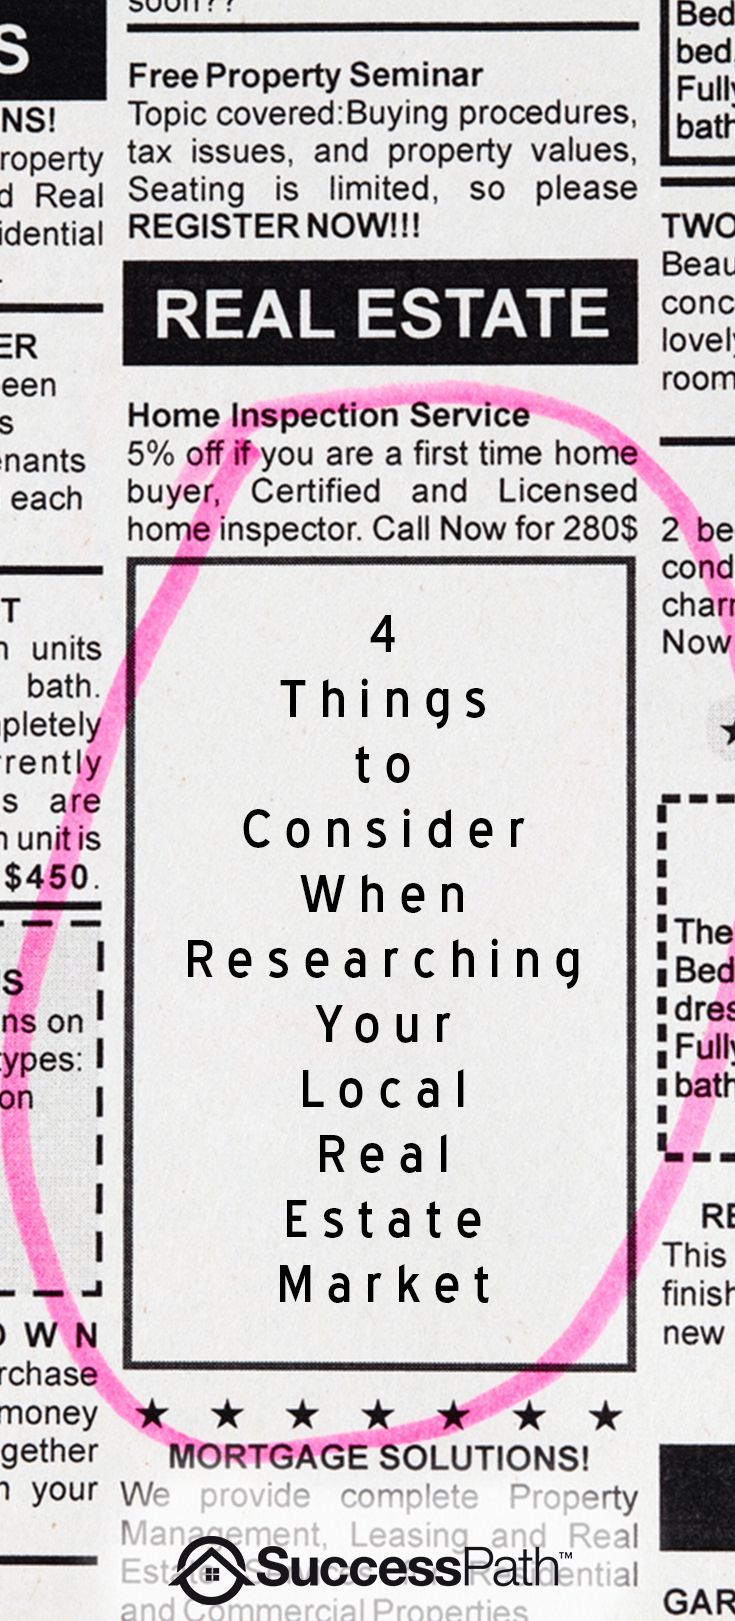 Consider these 4 things when you are researching your local real estate market. Get as much information as you can before you buy a house.